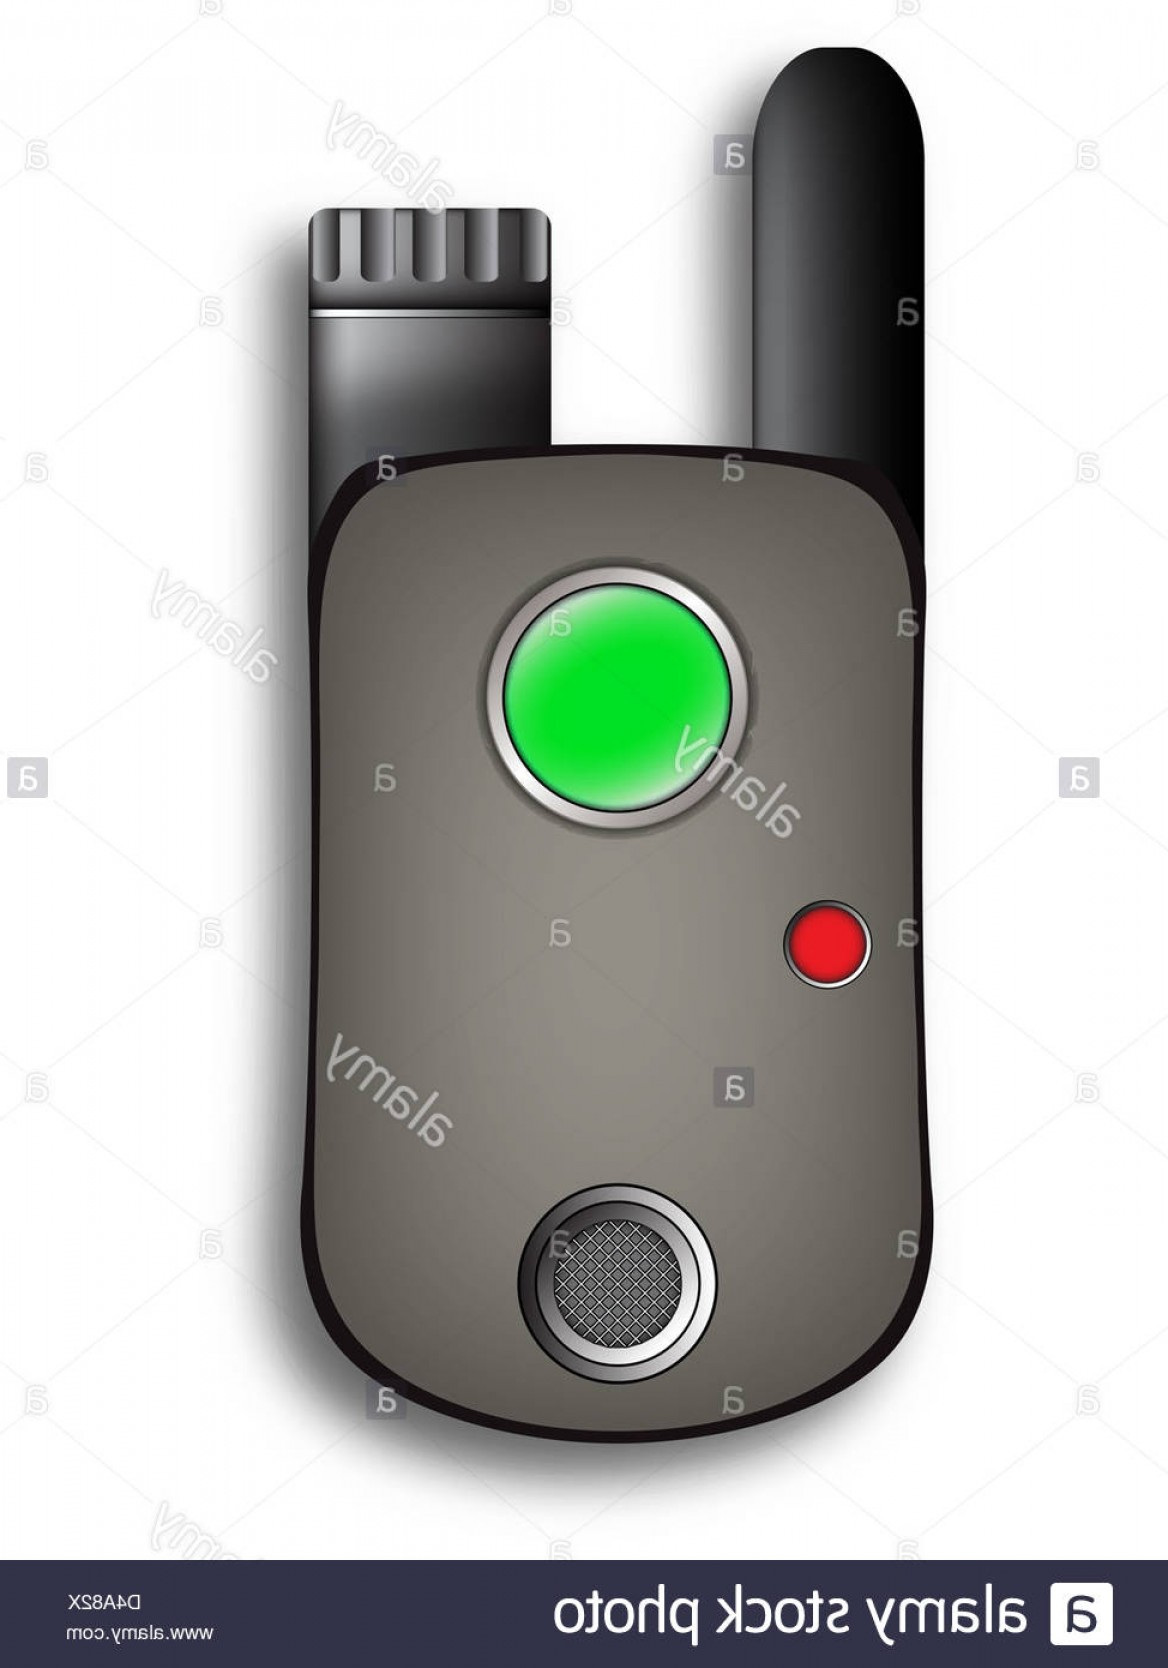 Xbox 360 Vector: Stock Photo Walkie Talkie Against White Background Vector Art Illustration Image